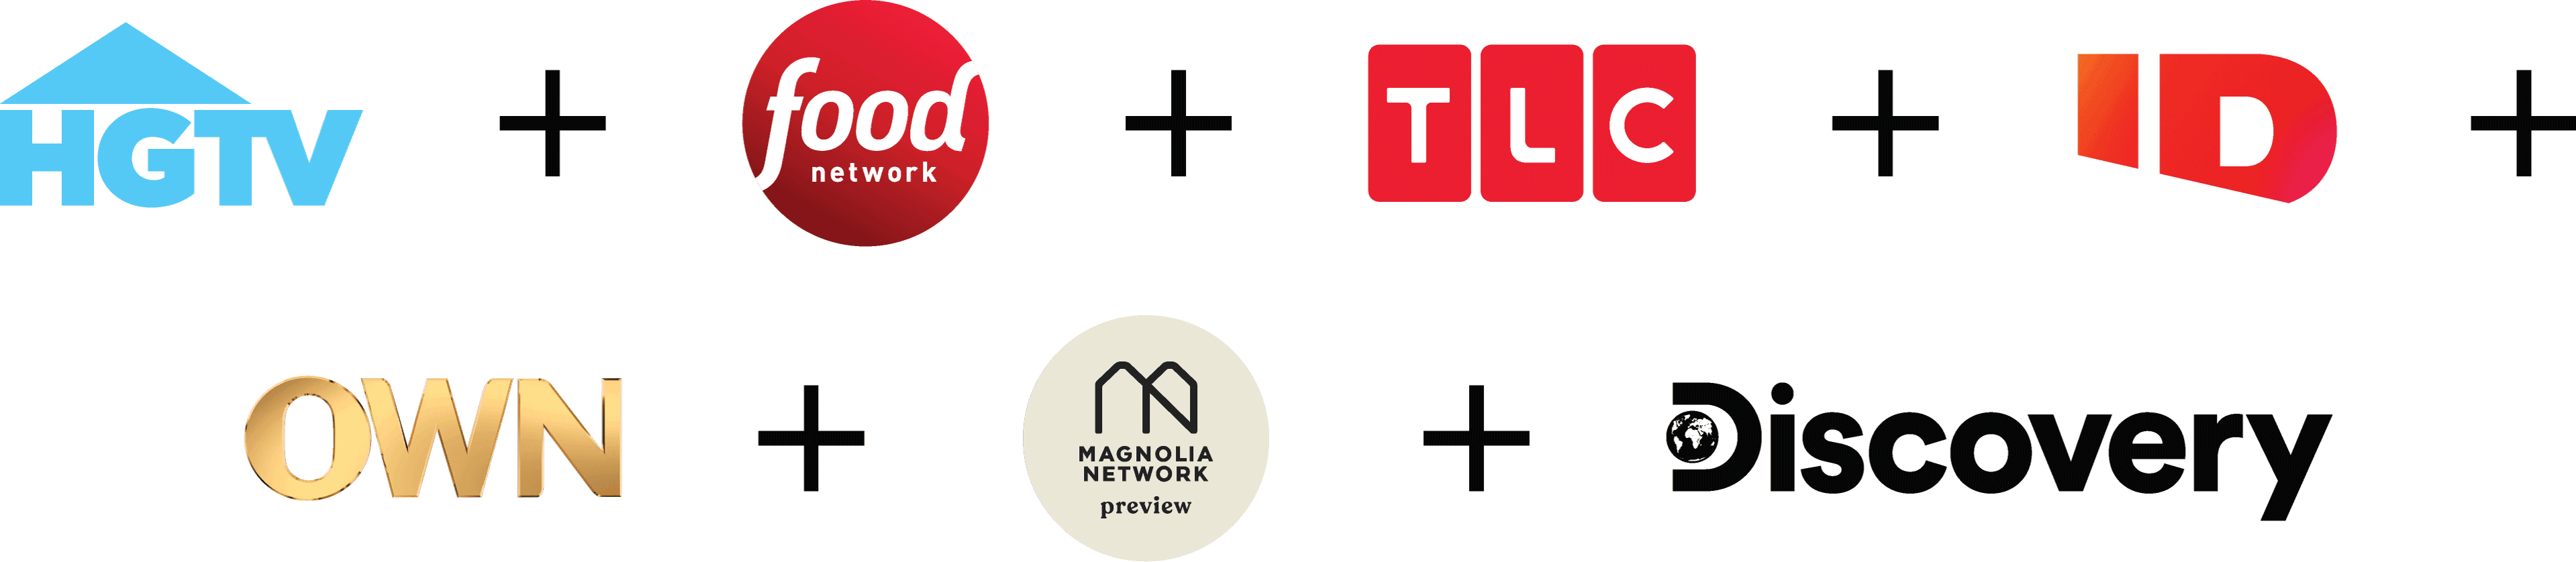 HGTV, Food Network, TLC, ID, Own, Magnolia Network, Discovery